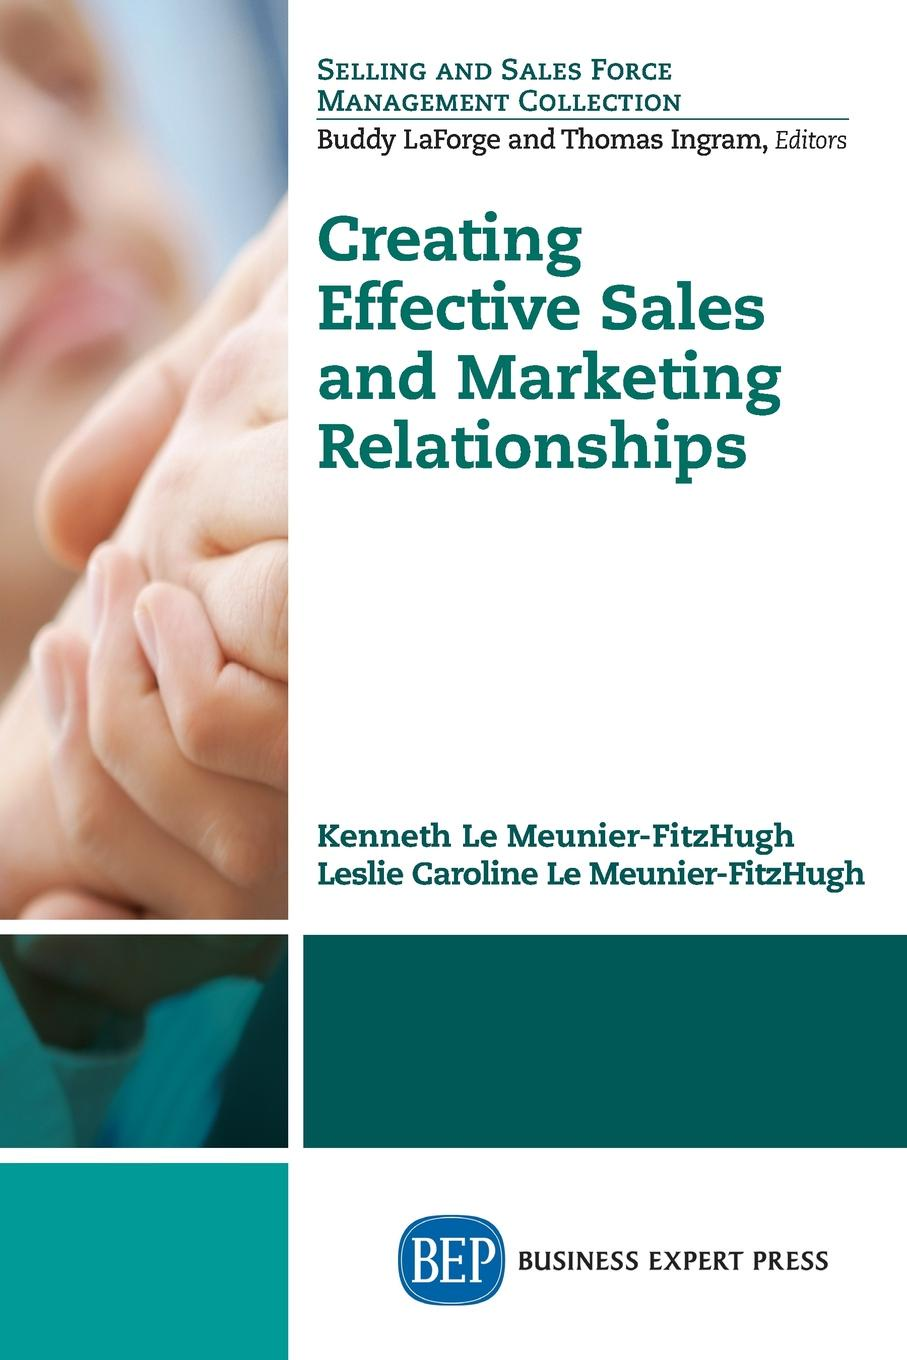 Kenneth Le Meunier-FitzHugh, Leslie Caroline Le Meunier-FitzHugh Creating Effective Sales and Marketing Relationships chris baggott email marketing by the numbers how to use the world s greatest marketing tool to take any organization to the next level